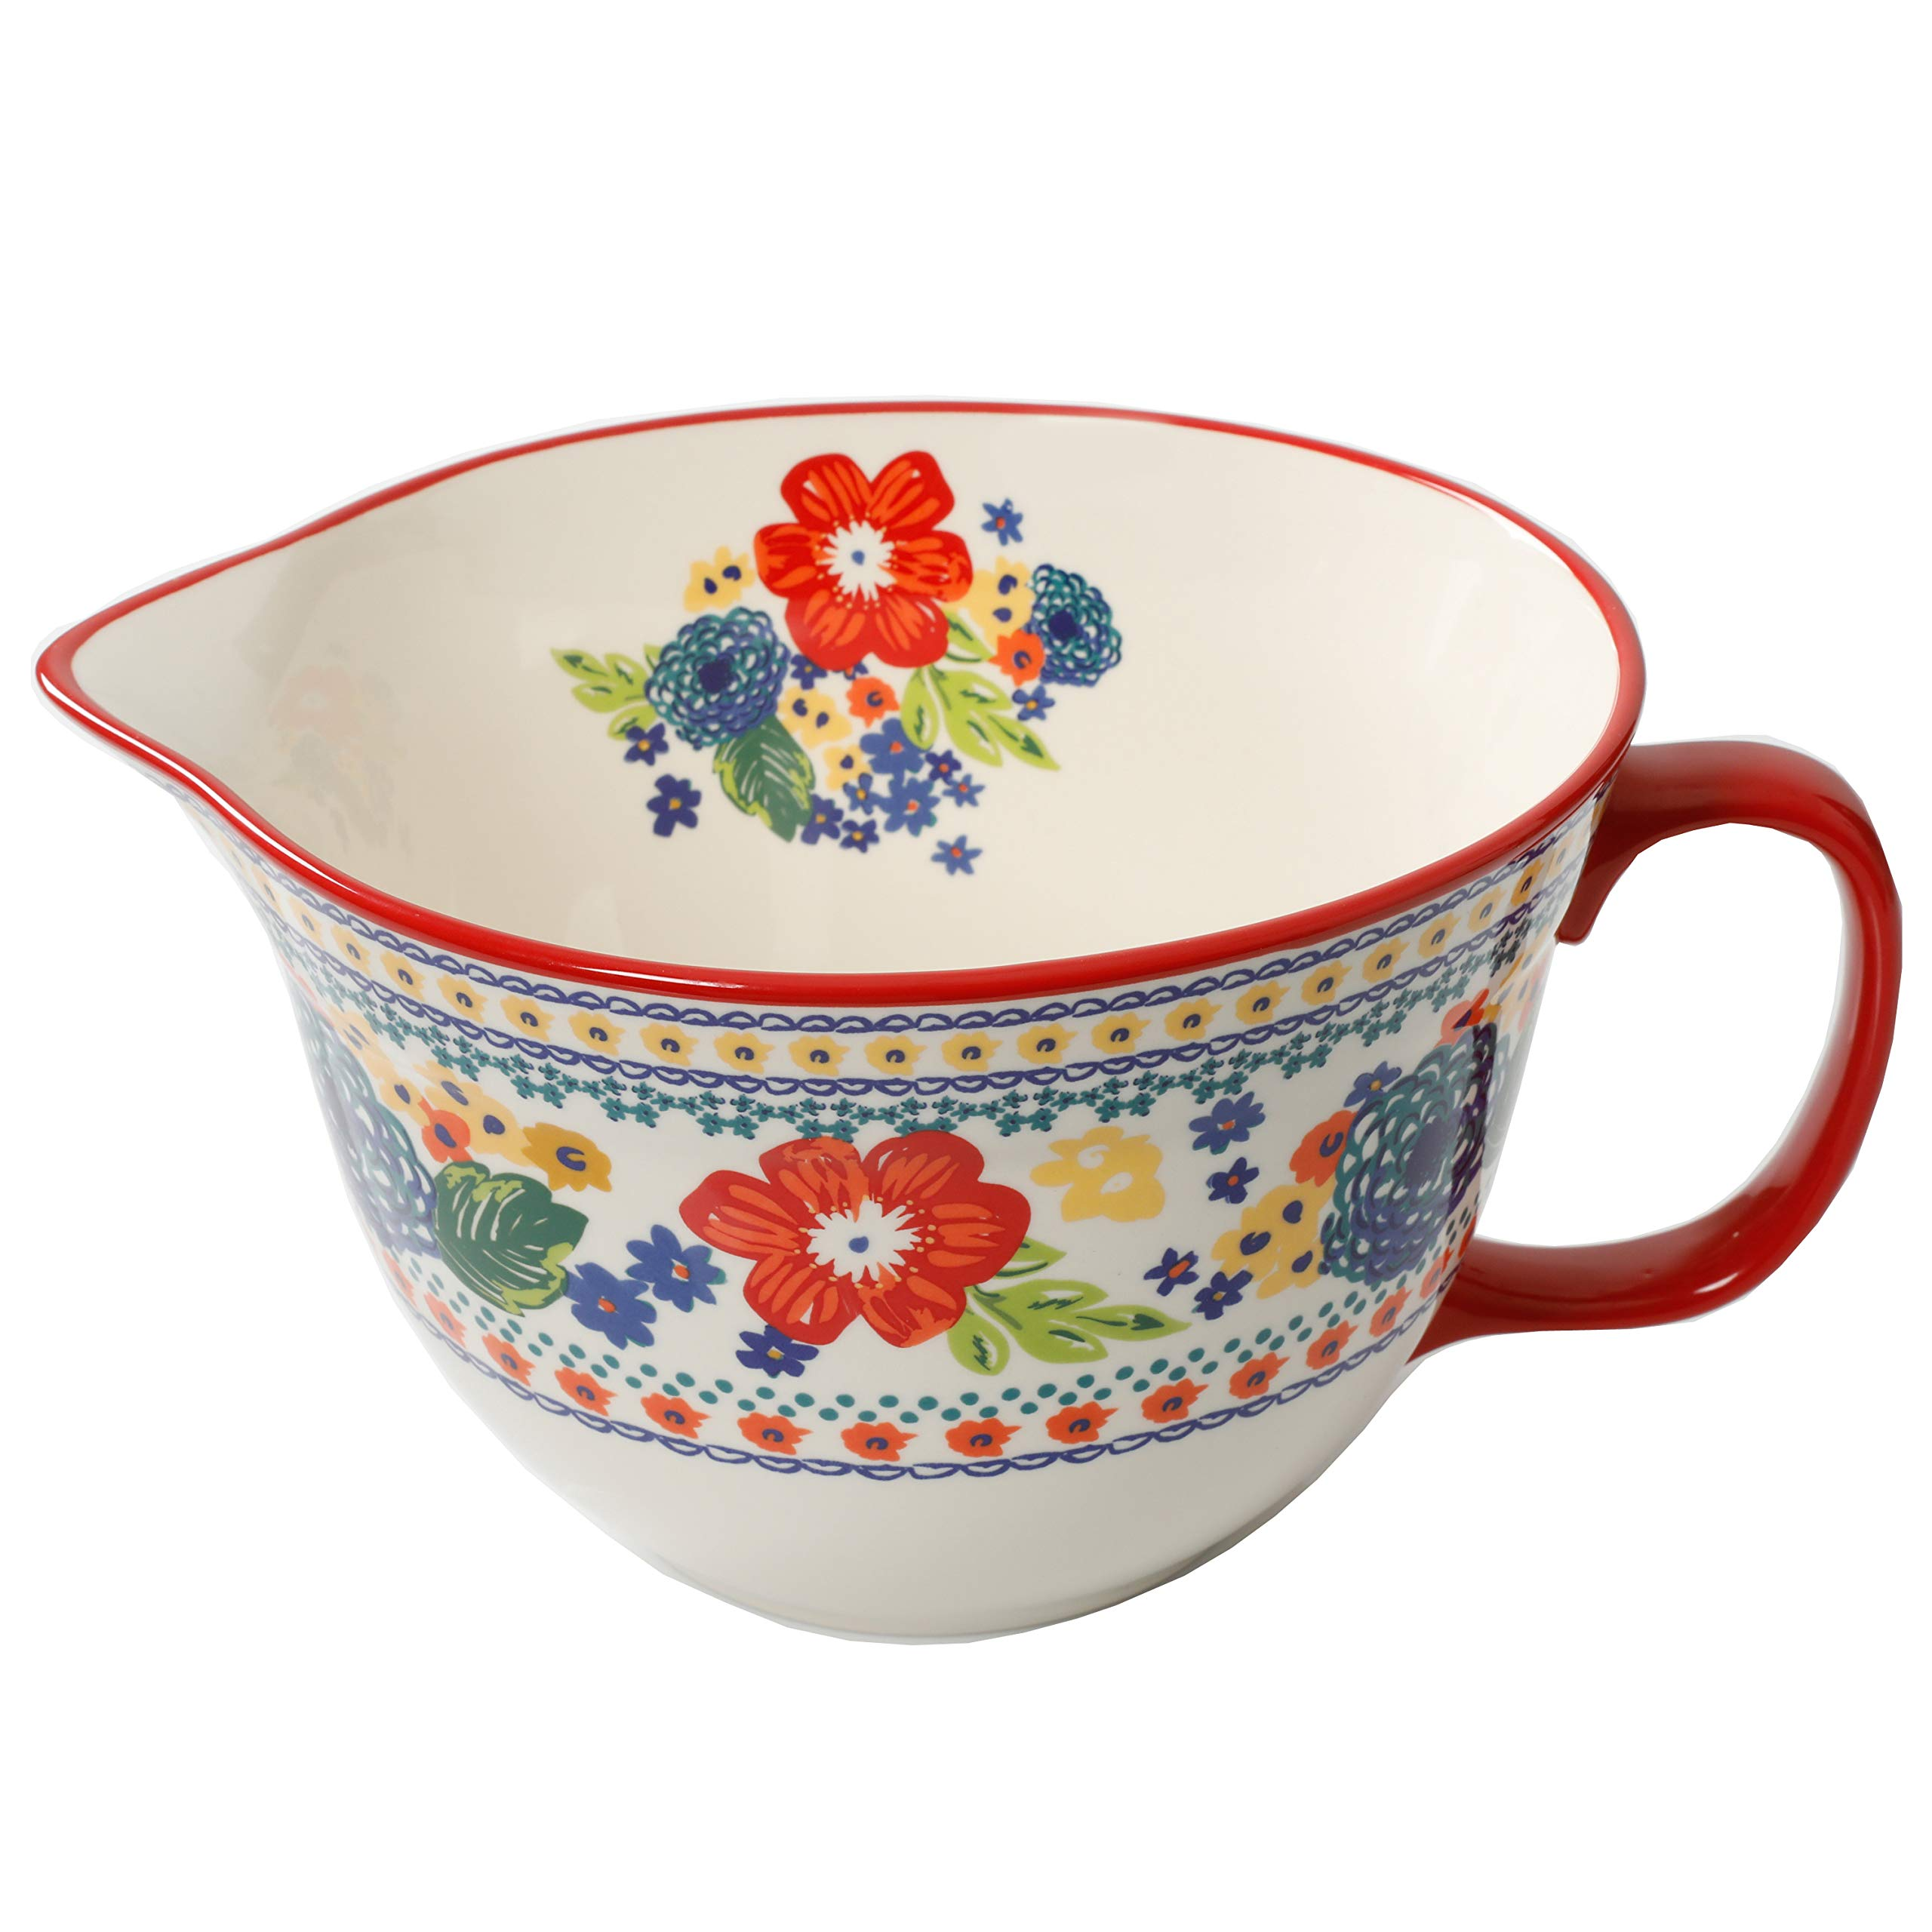 The Pioneer Woman 3.3 Quart Dazzling Dahlias Batter Bowl, 1-Piece bundle with The Pioneer Woman 2-Piece Rectangular Ruffle Top Ceramic Bakeware Set'' by The Pioneer Woman (Image #2)